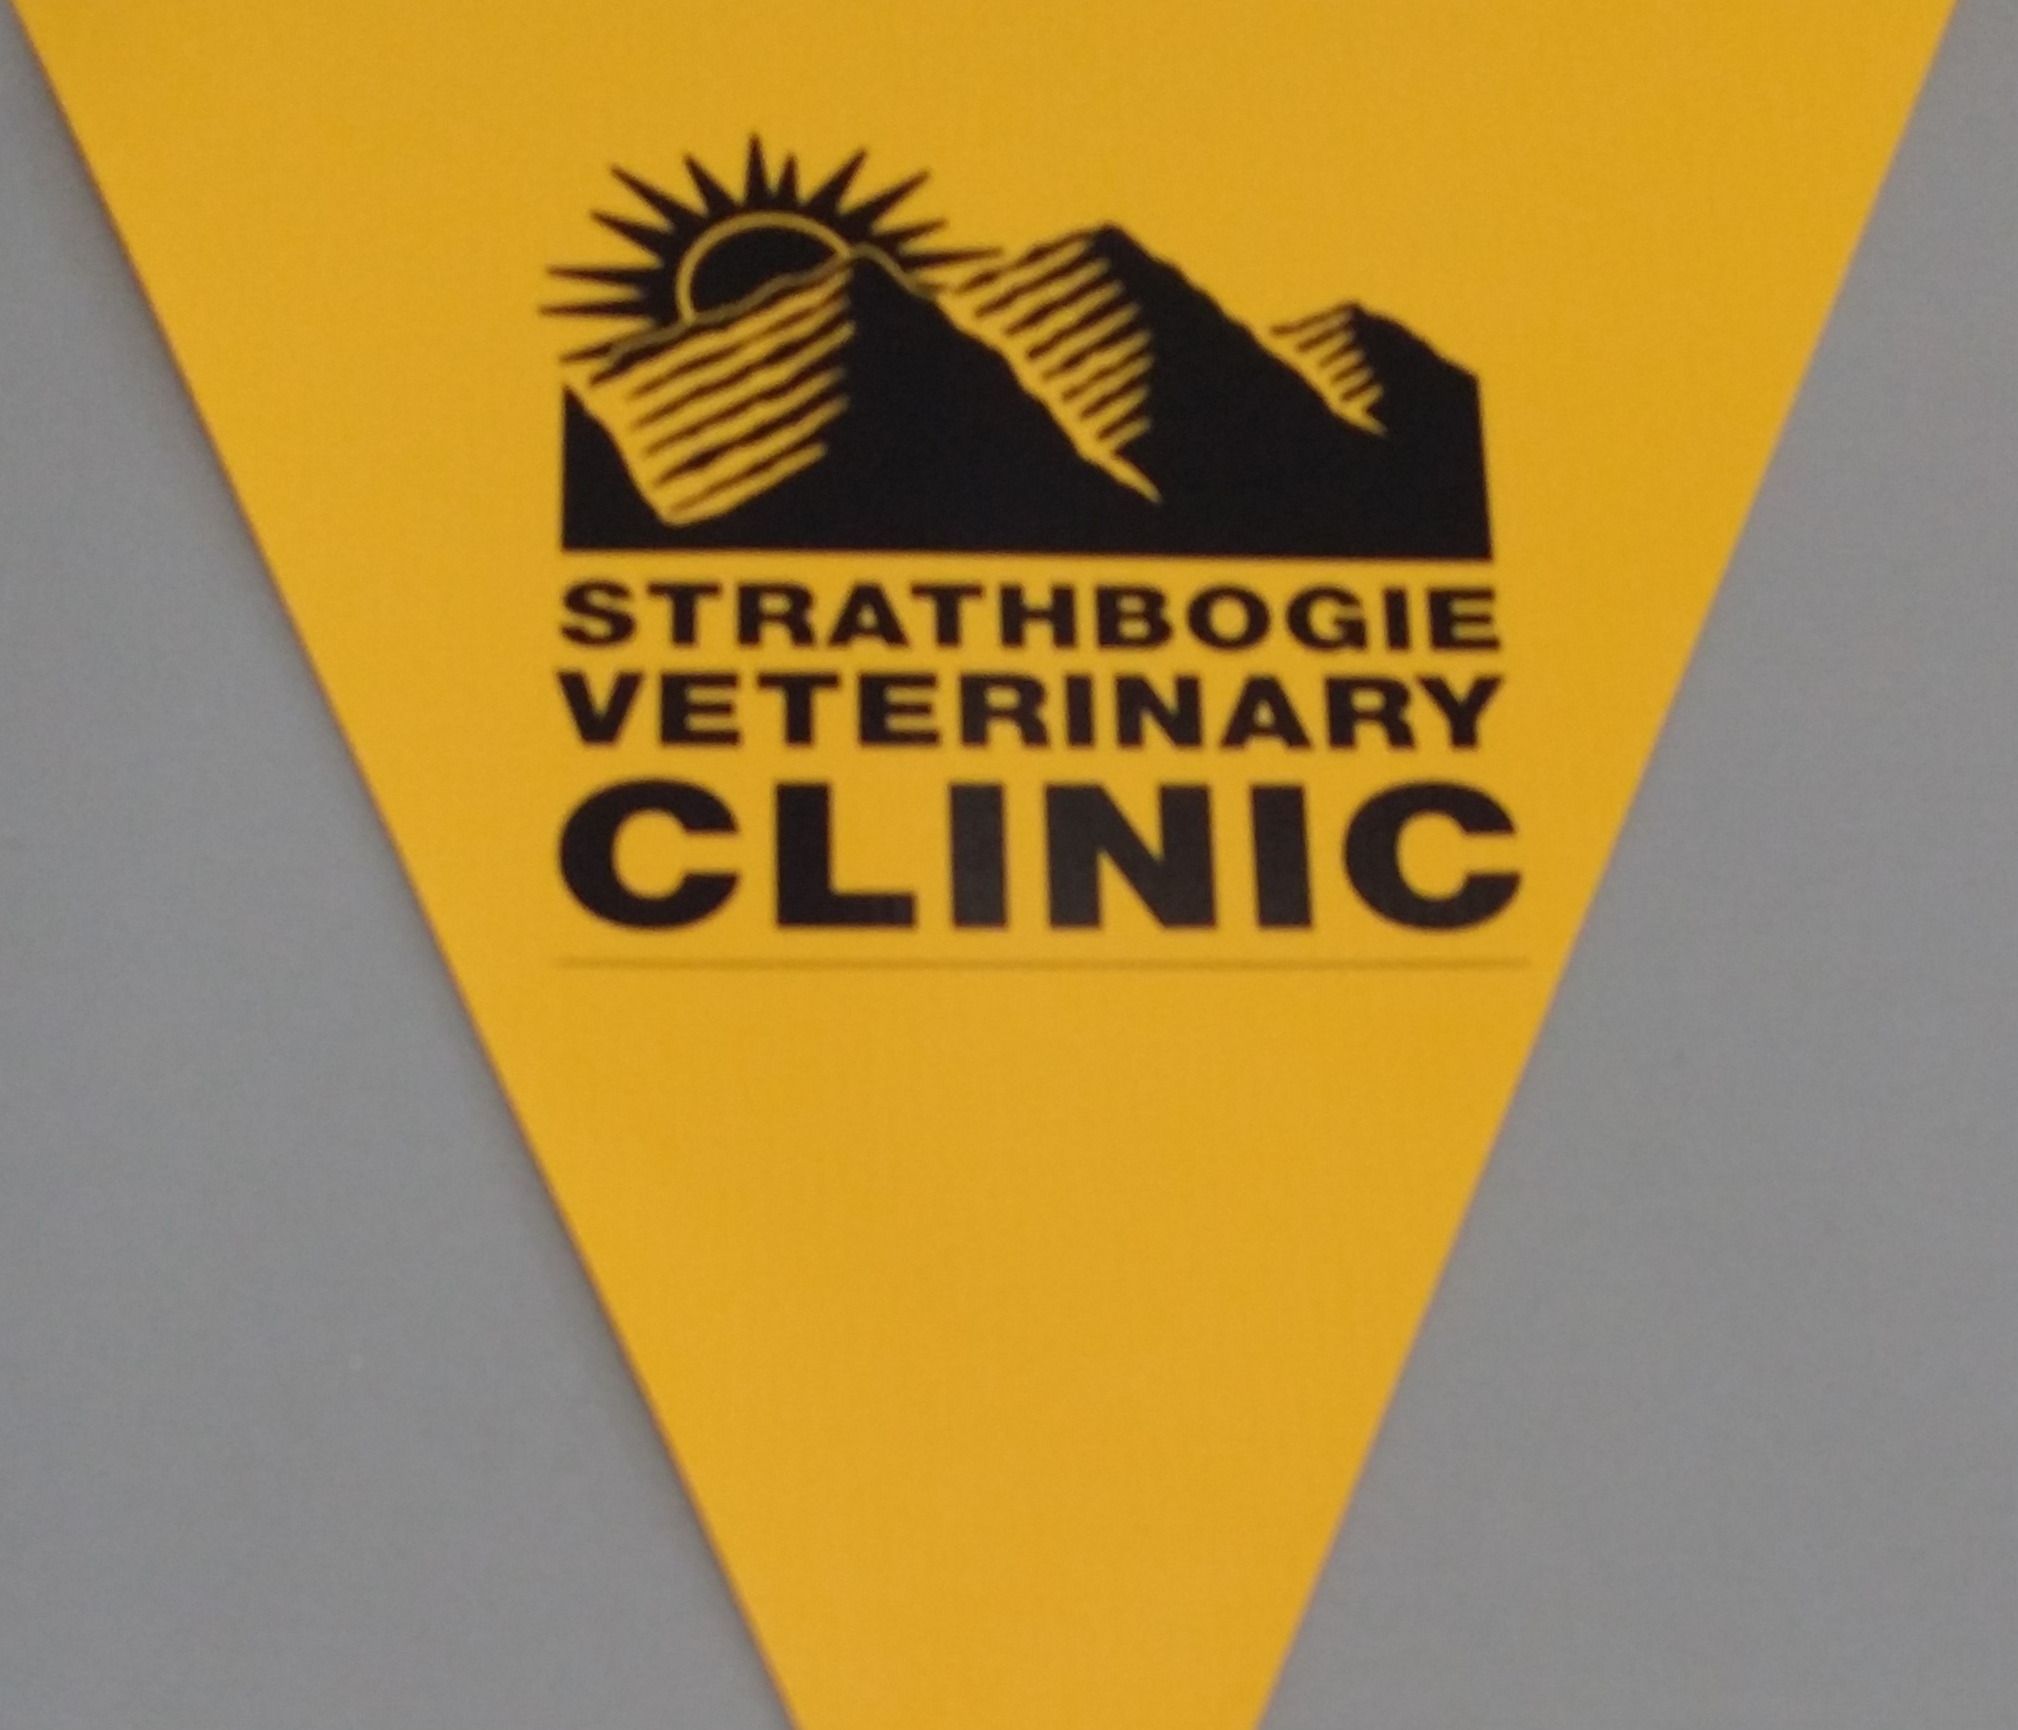 Strathbogie Veterinary Clinic (yellow)